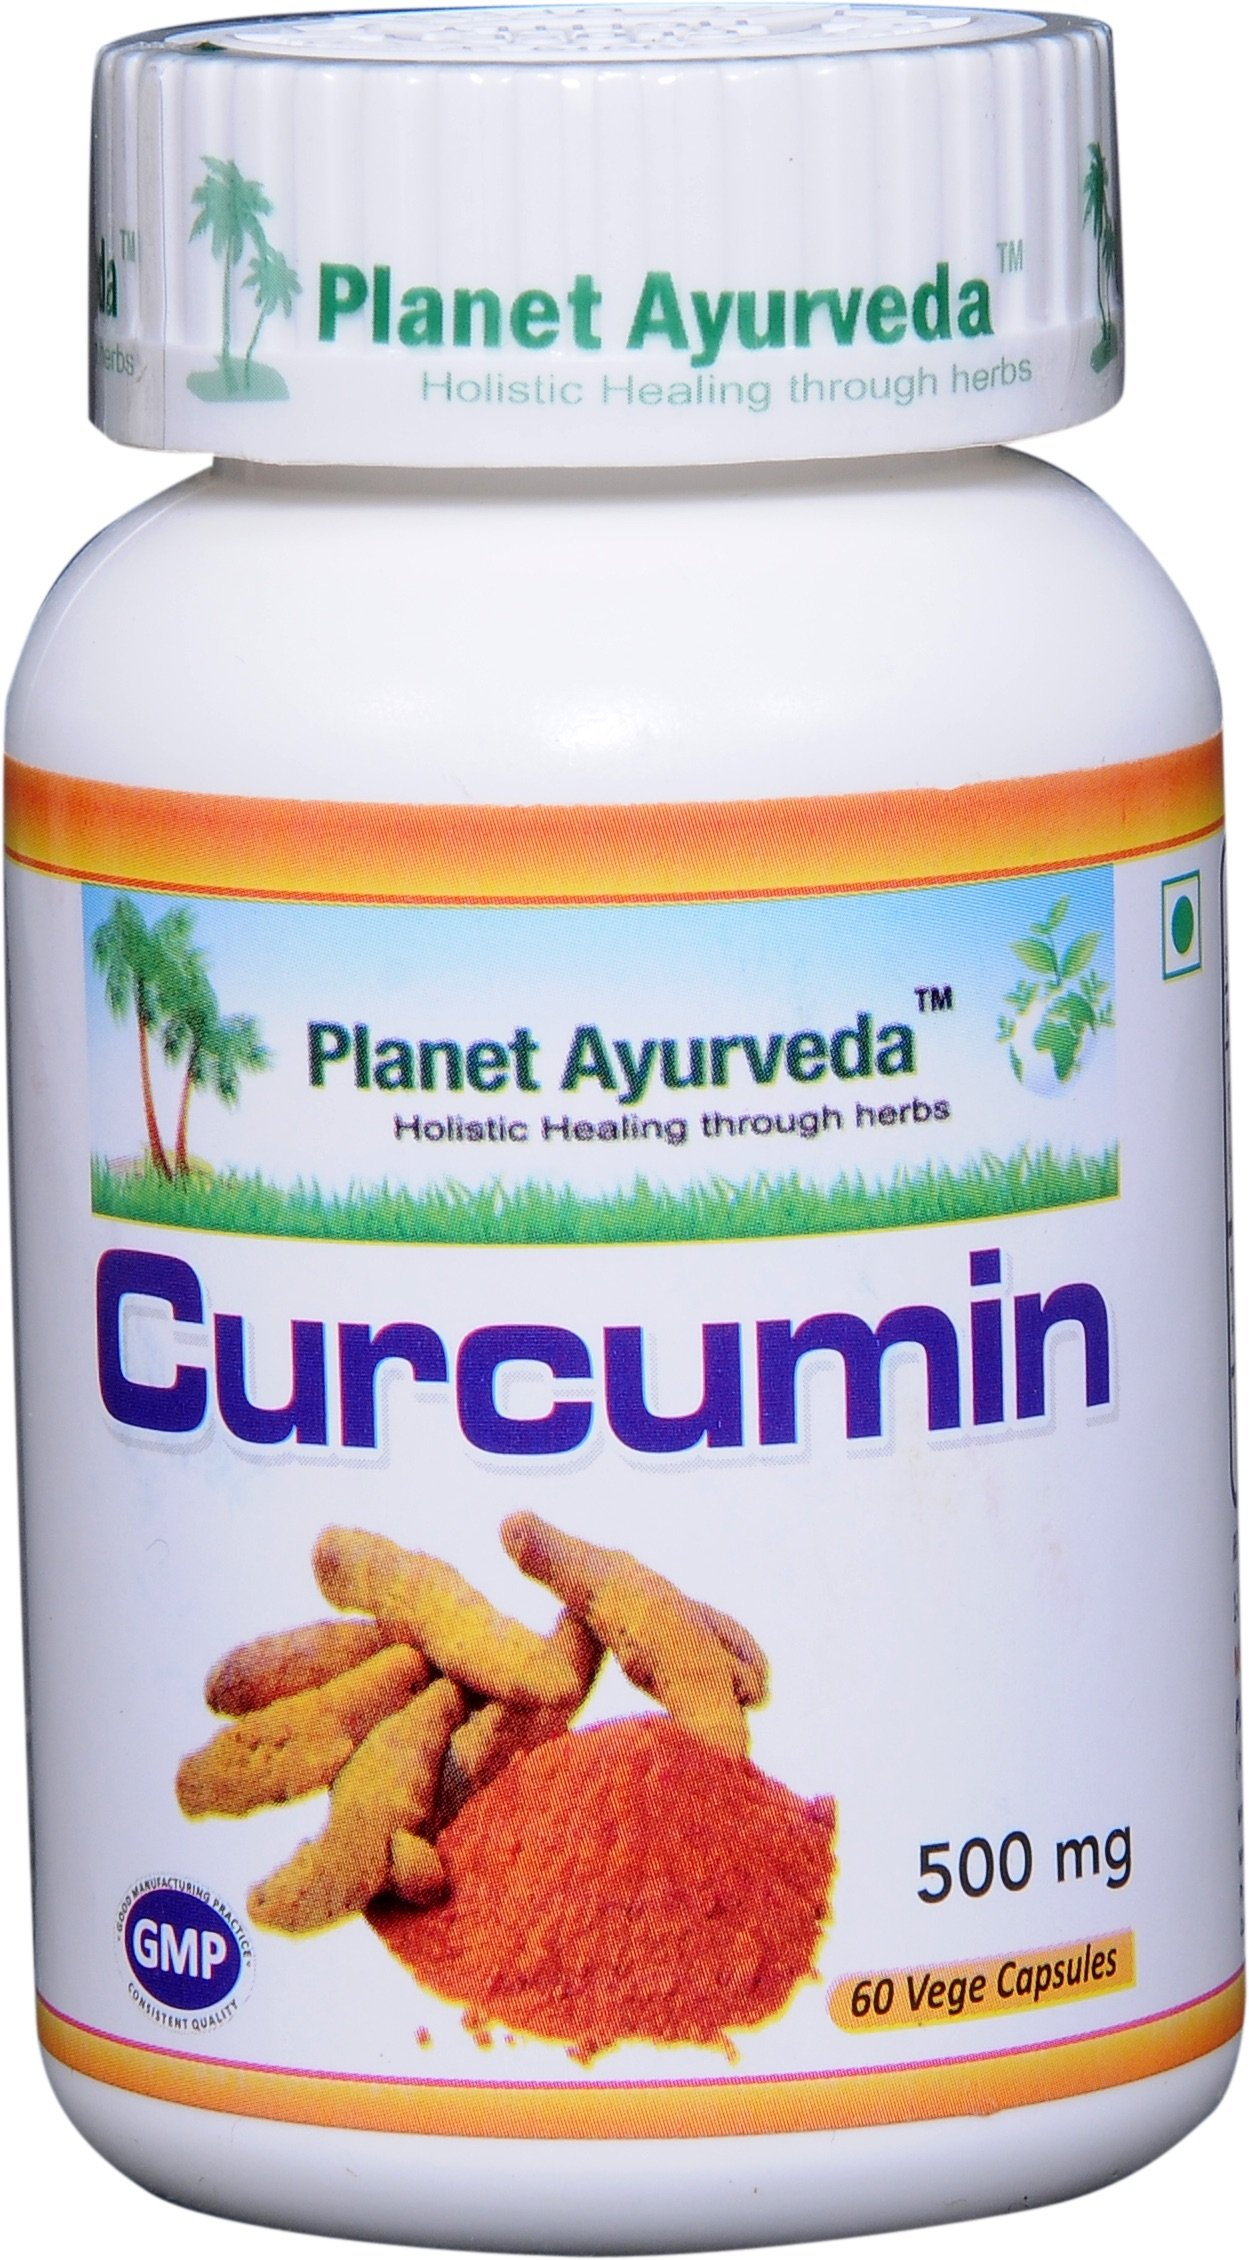 Curcumin - 2 bottles (each 60 capsules, 500mg) - Planet Ayurveda in USA